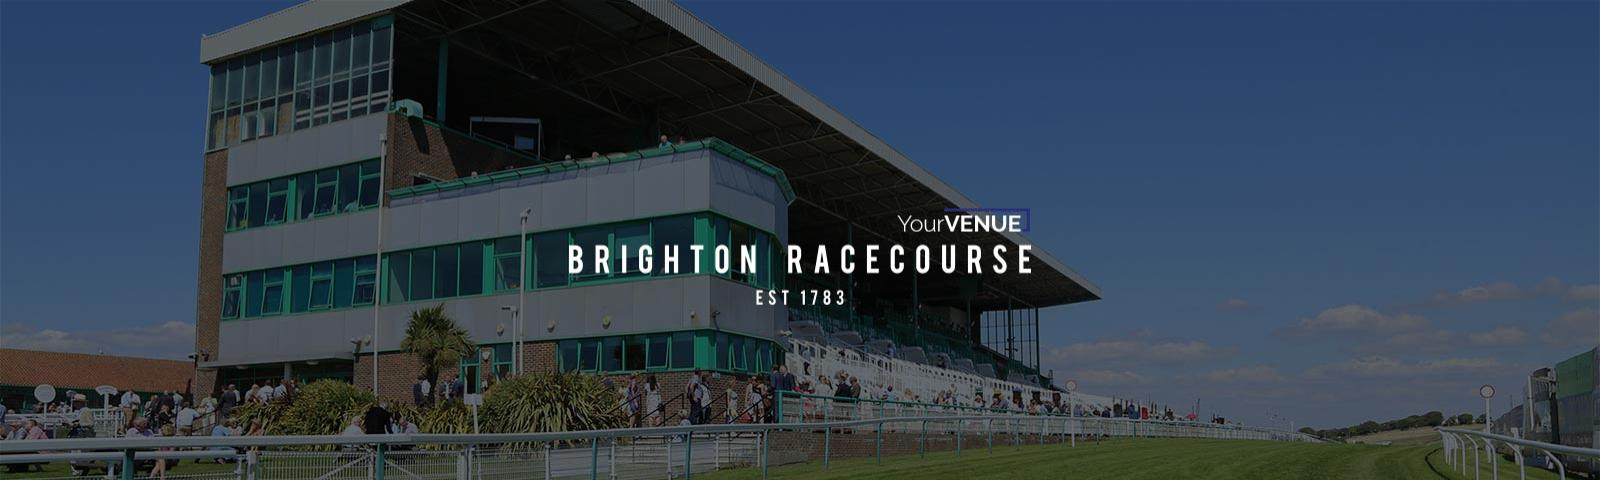 Brighton Racecourse' Grandstand with a YourVENUE promotional overlay.